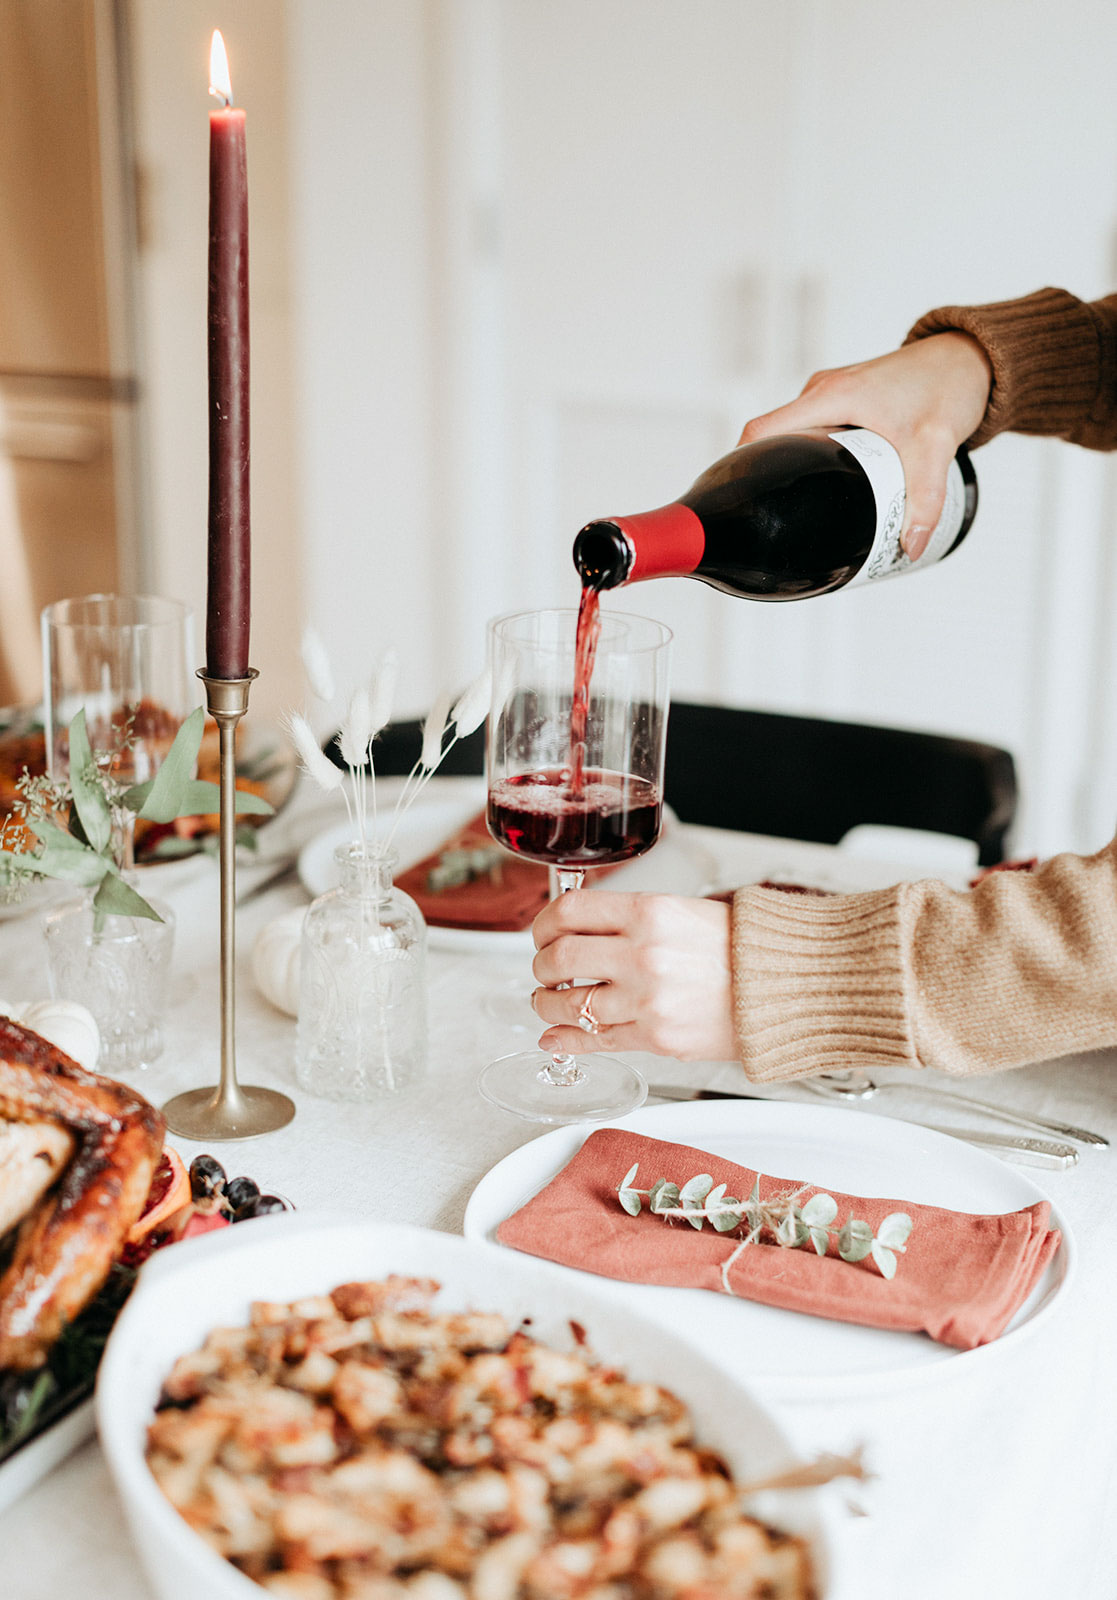 pouring wine into a glass on a thanksgiving table